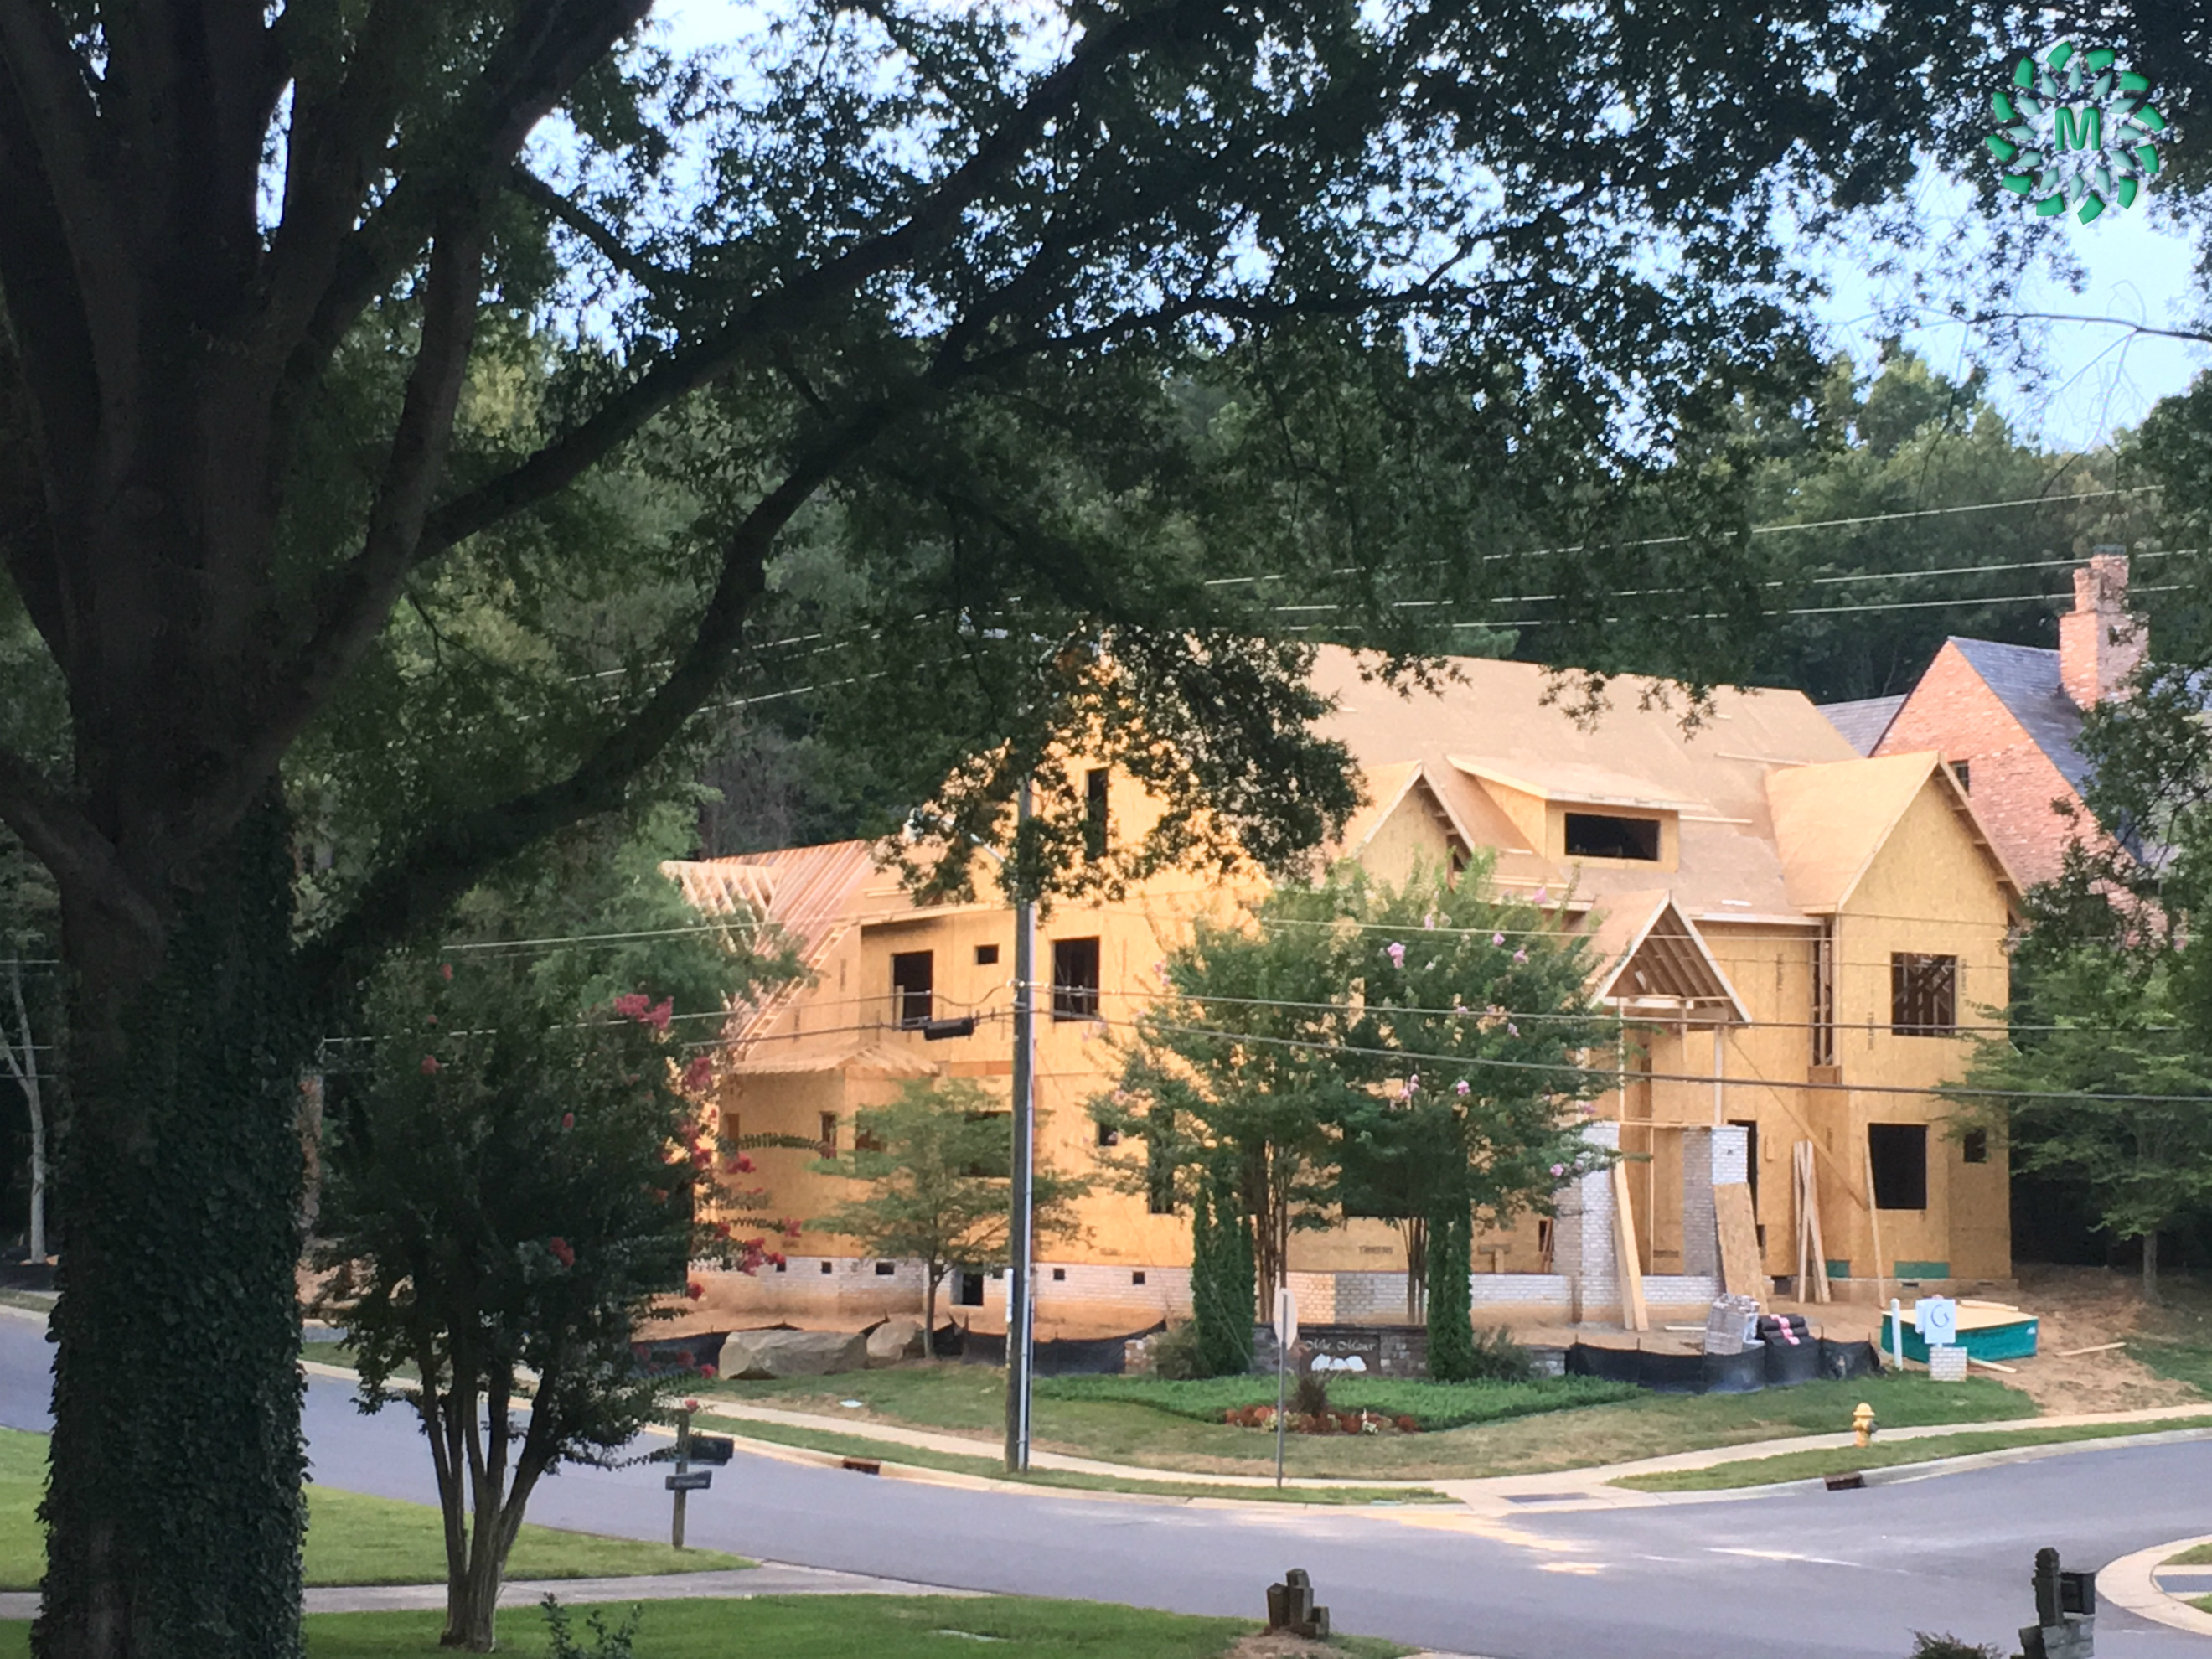 Keeping tabs on the neighbor's new construction in Charlotte NC